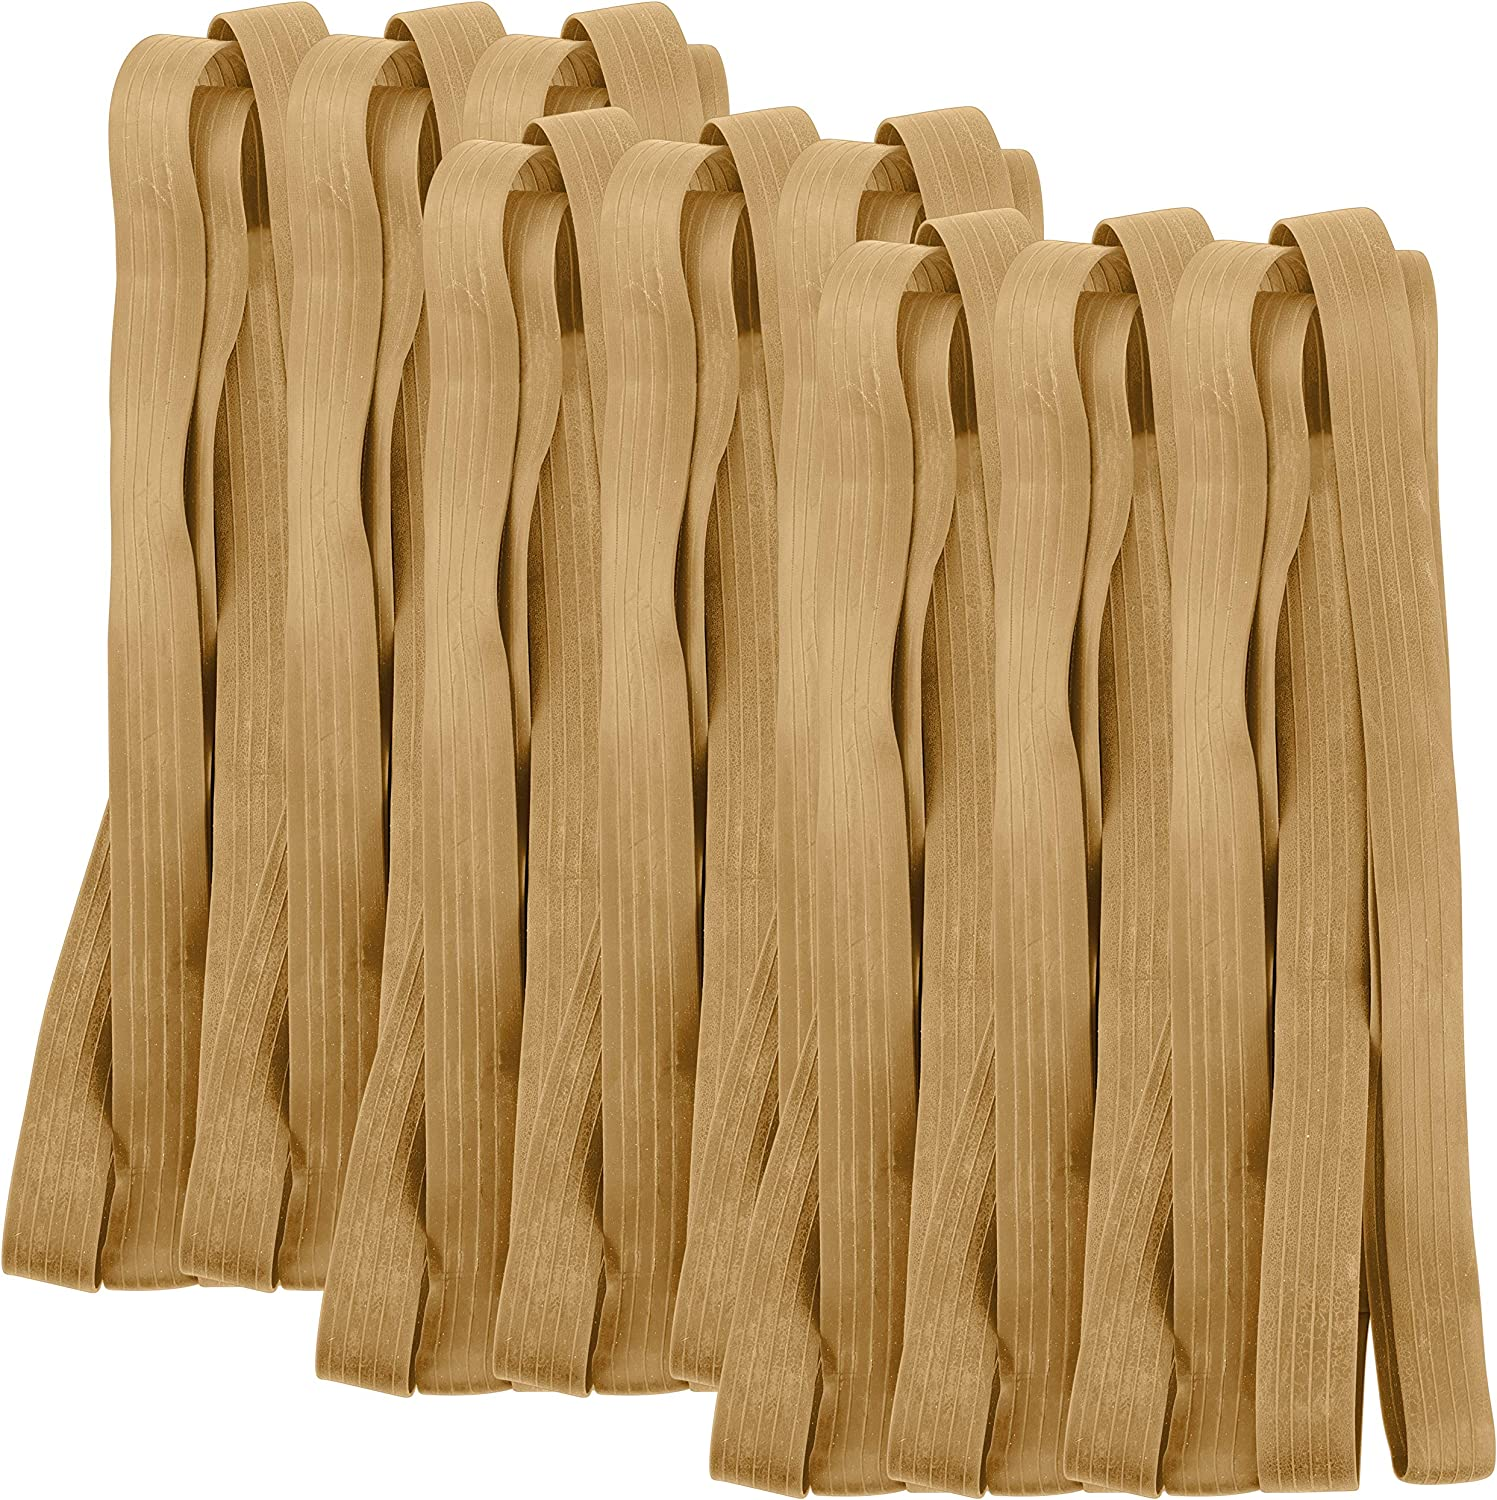 12 Pack Furniture Rubber Bands-25